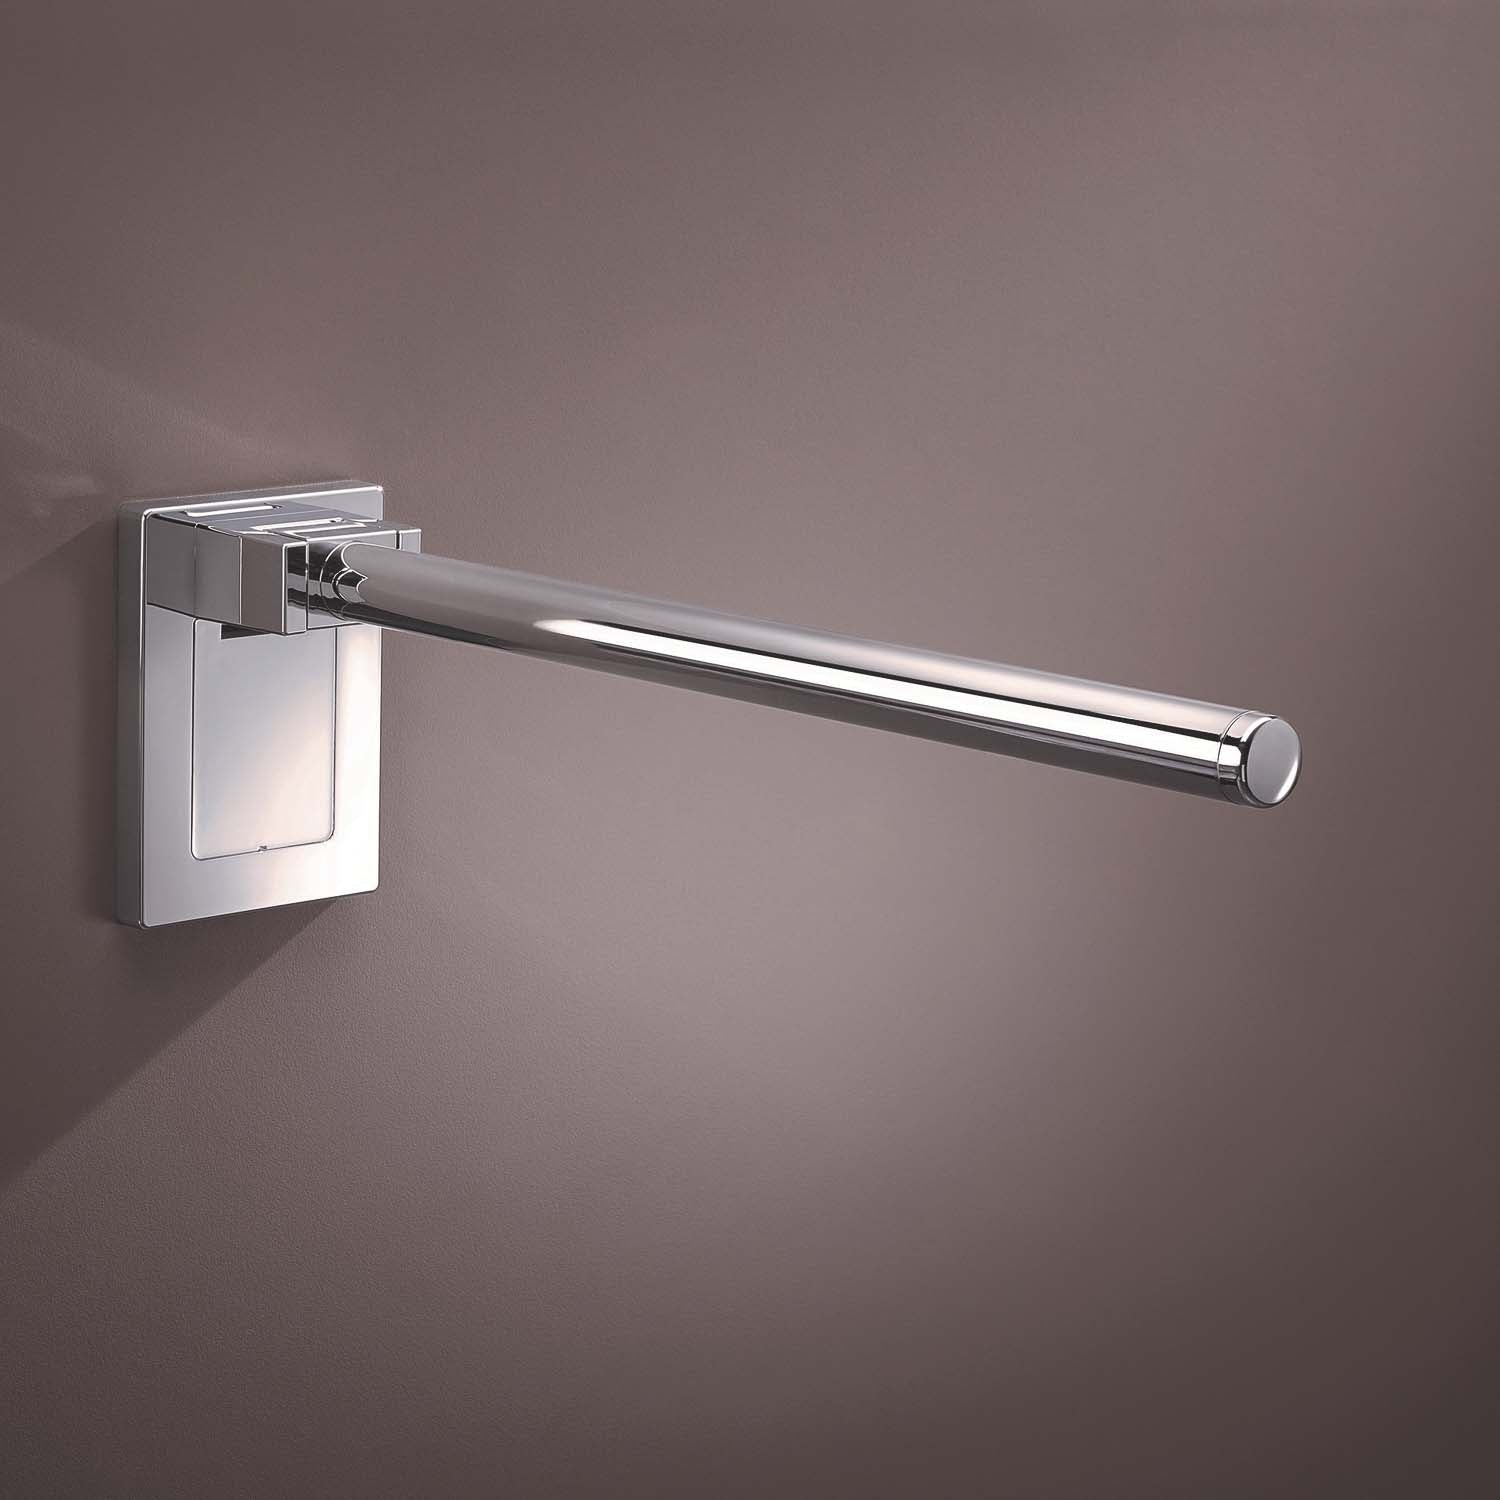 600mm Circula Removable Hinged Grab Rail with a chrome-look finish lifestyle image